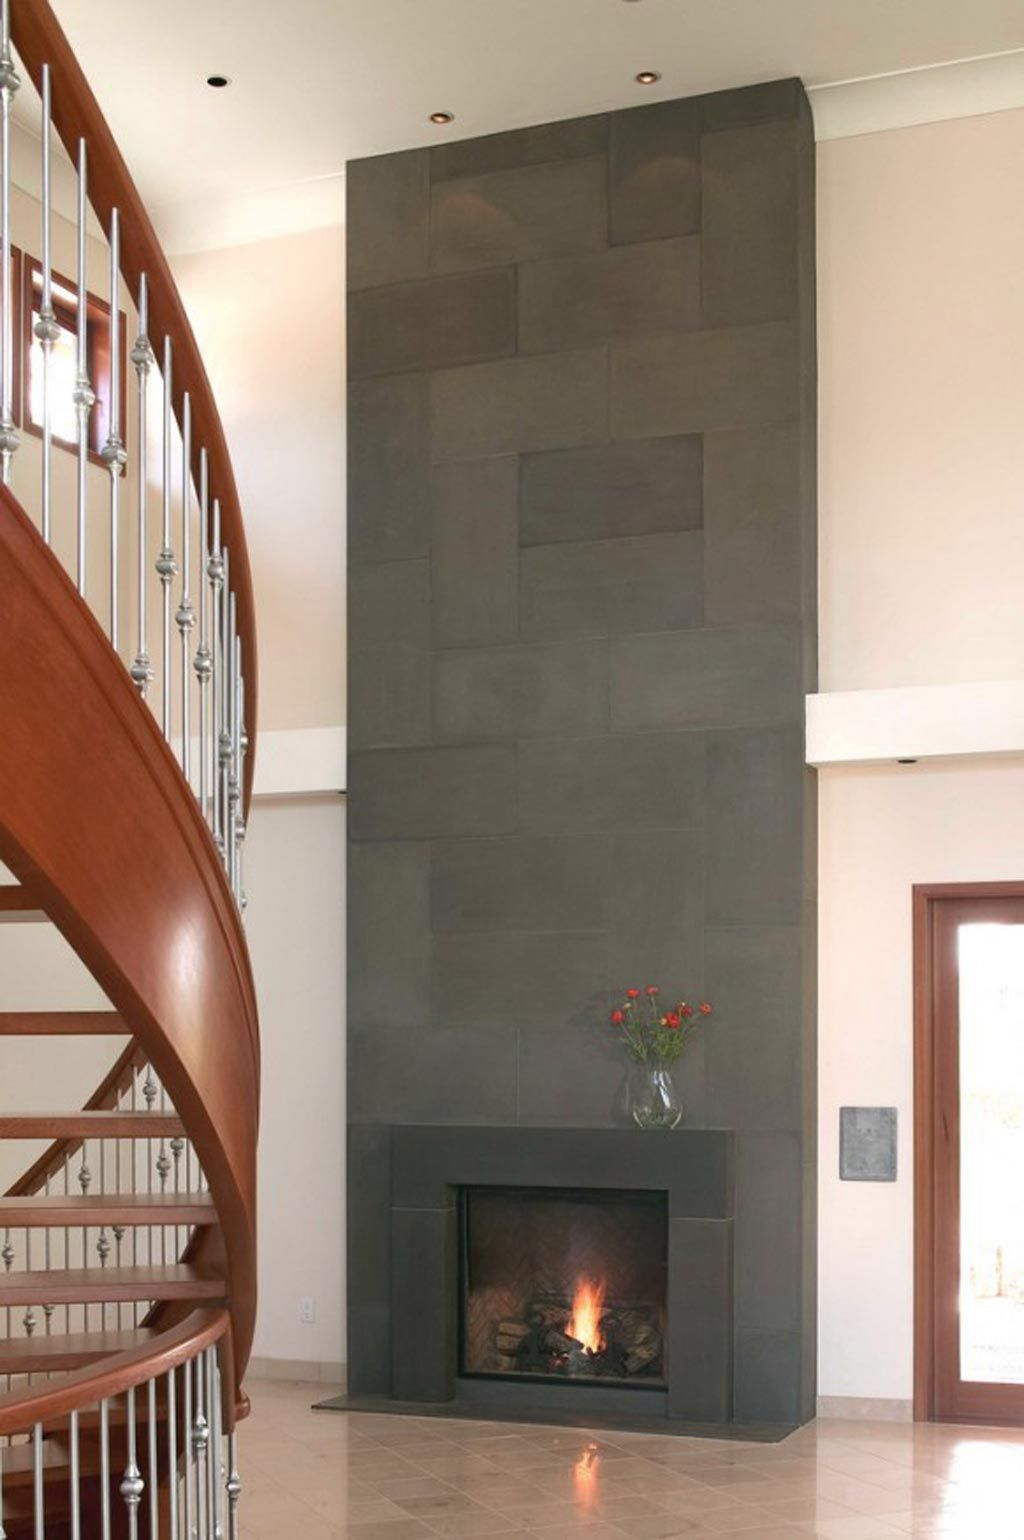 Updating Your Old Fireplace With A Modern Designed Variety ...